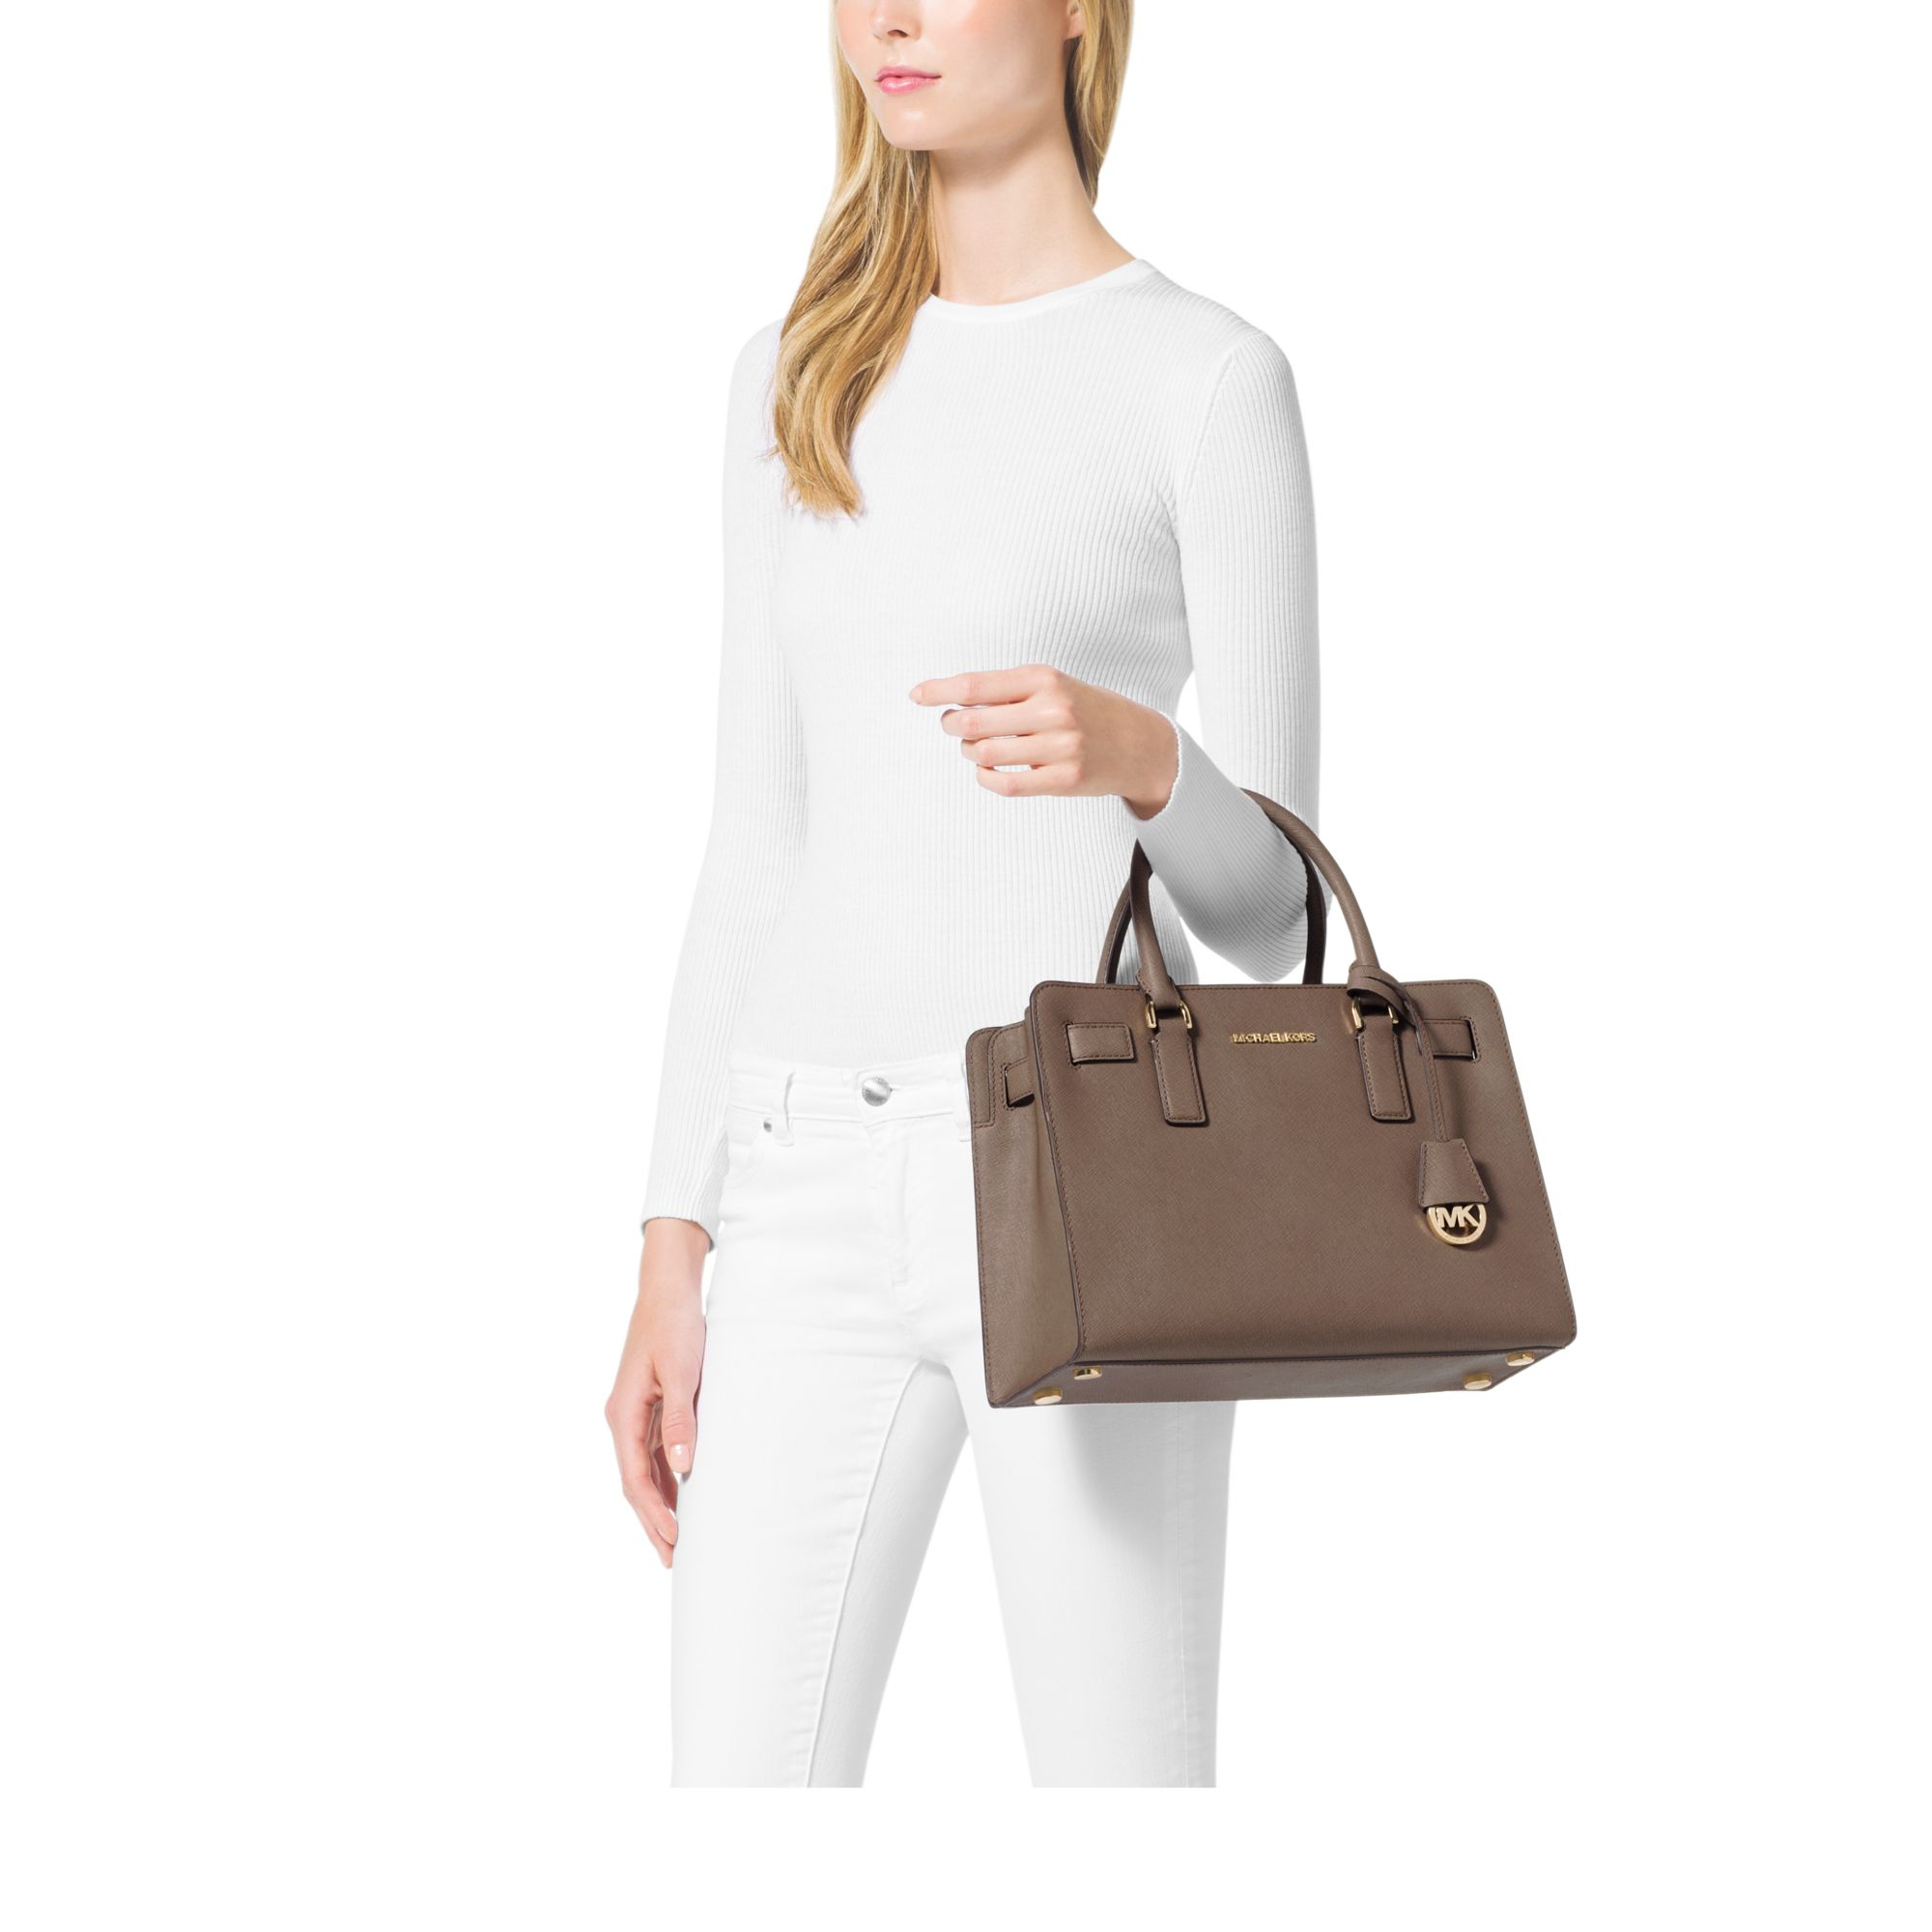 949100fd24 Womens Michael By Michael Kors ... MICHAEL Michael Kors Dark Dune Selma  Studded Large Tz Satchel Bag Michael Kors Selma Saffiano Leather  Colour-Block Medium ...